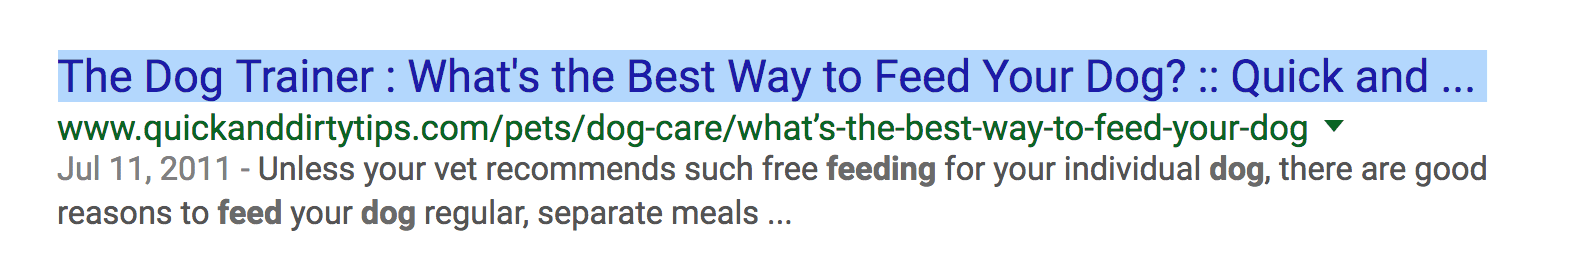 A title tag is showing incorrectly on Google's Search Engine Results Page because it's too long. The title is cut off and .... shows at end of title. This is not an optimized title tag.